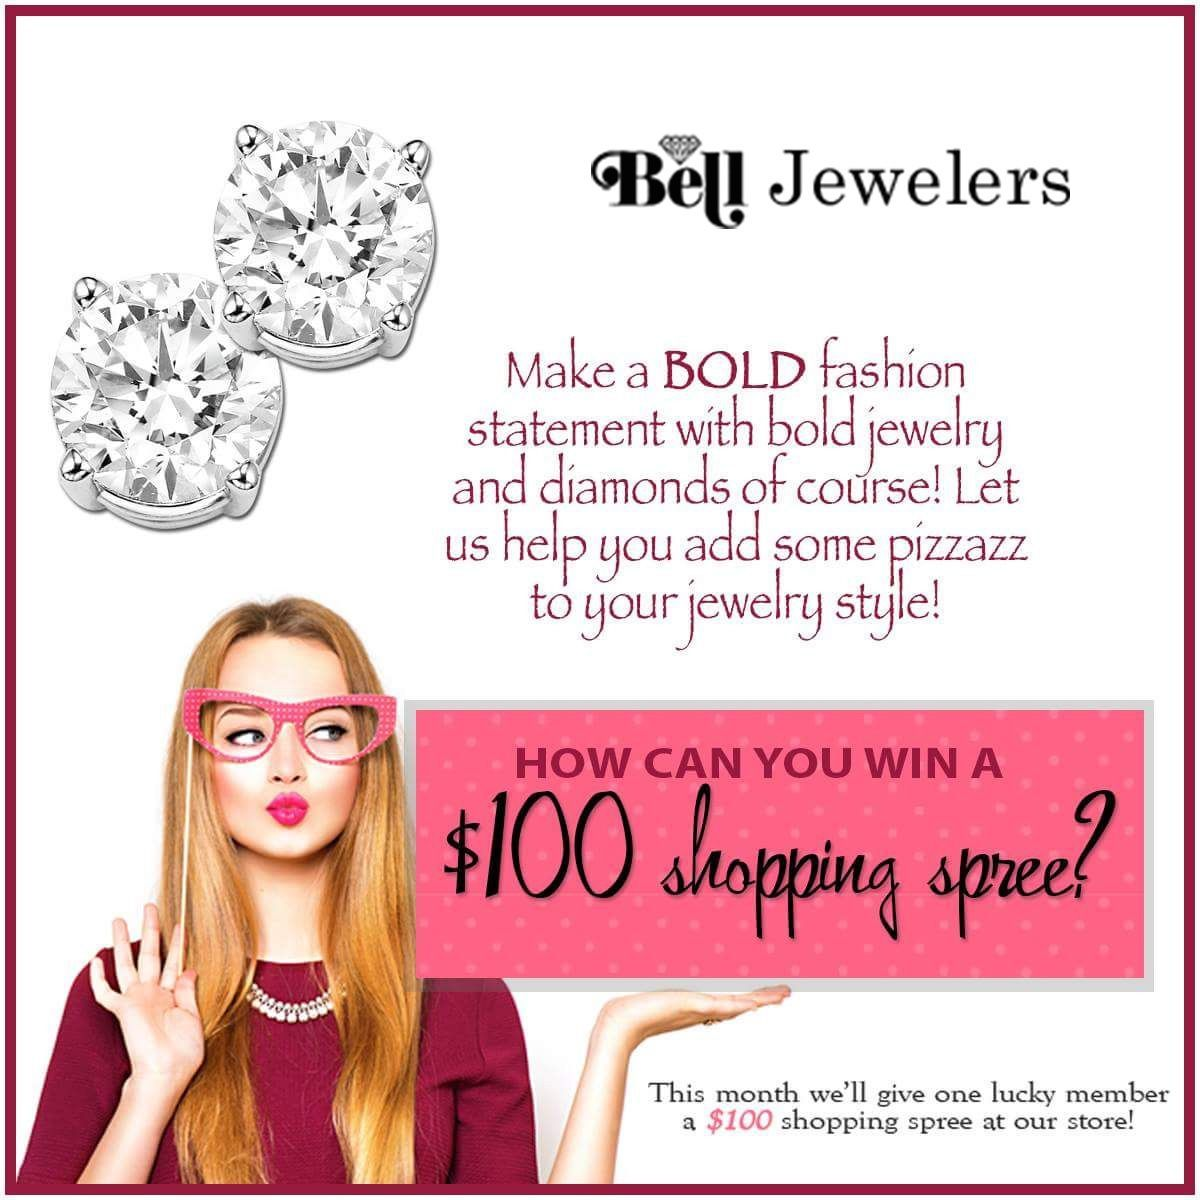 Be Bold, Be Brave, Be You!  Be Bold and SHARE for more chances to win a $100 shopping spree!  Click to share on our Super Fan page or to learn how to join! belljewelers.perksocial.com #SuperFan #Diamonds #Jewelry #BeBold #BoldStyle #Fun